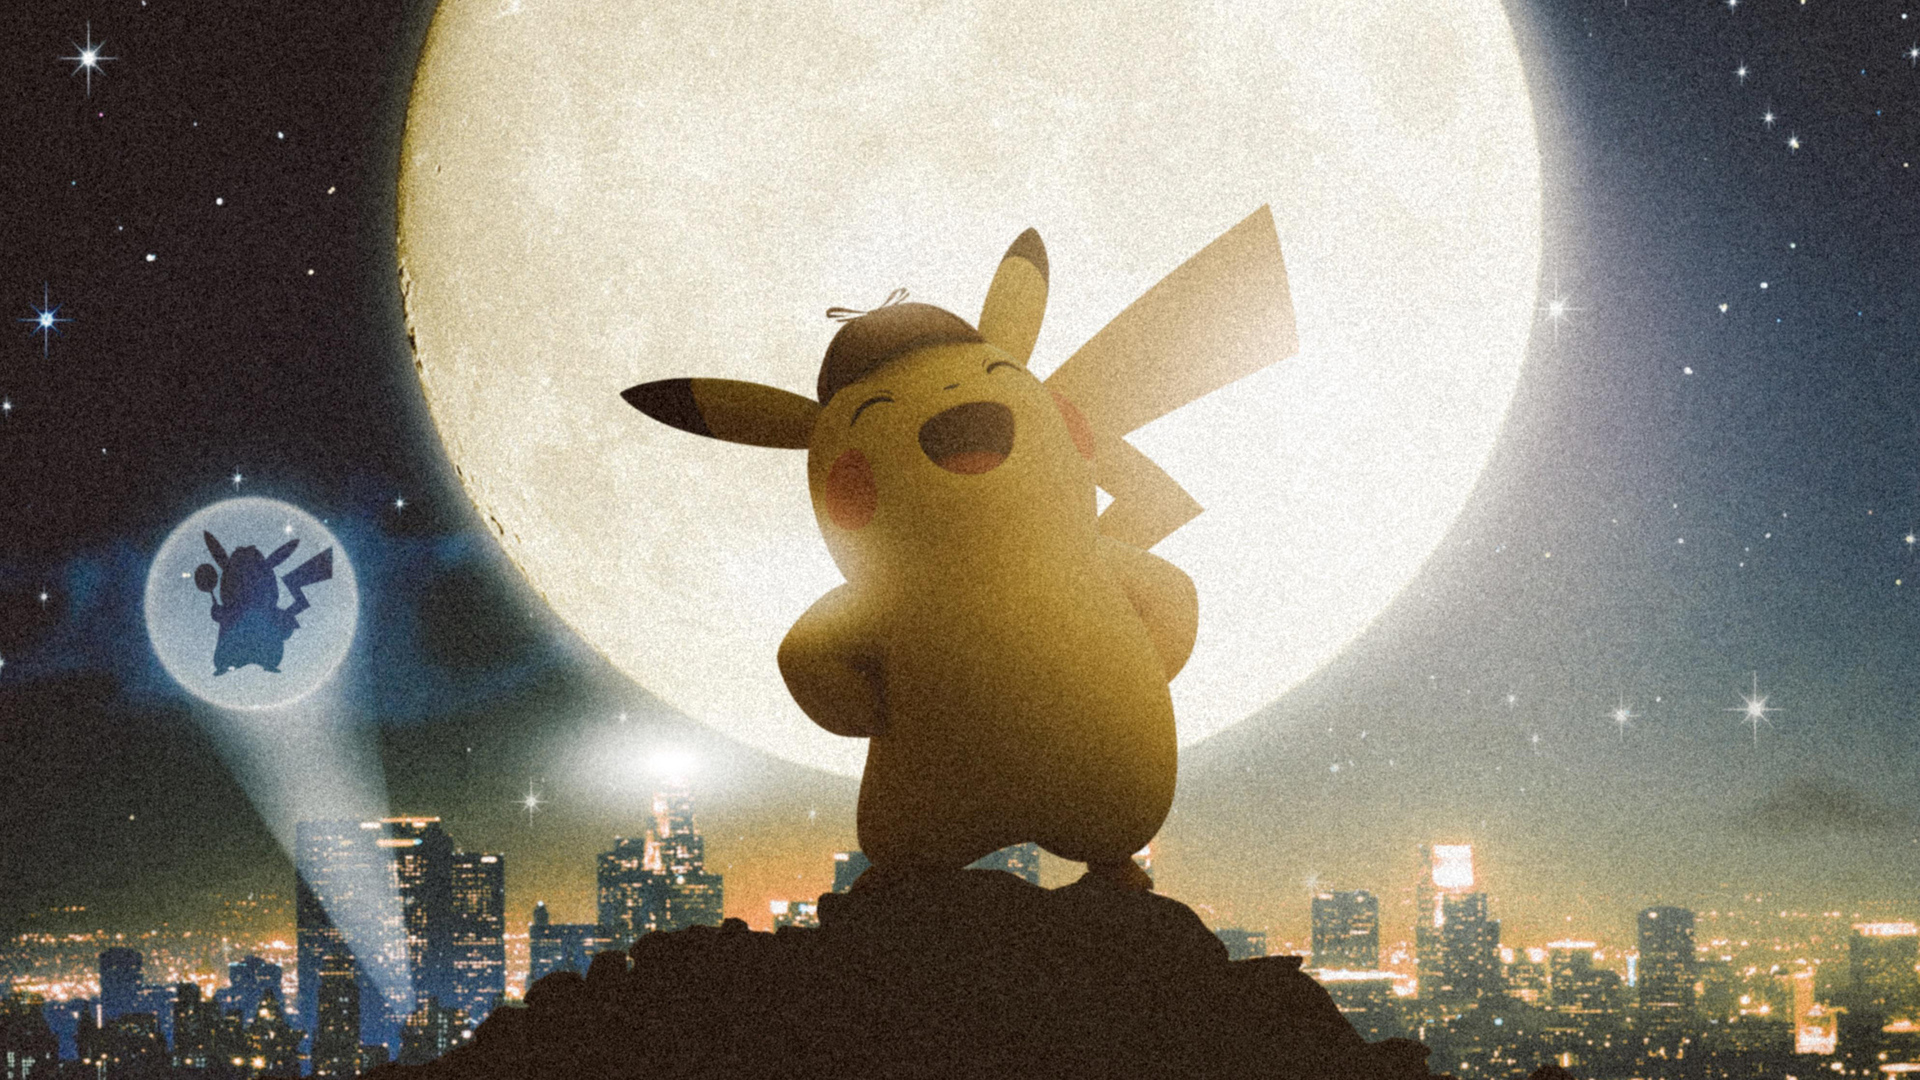 1920x1080 Detective Pikachu Laptop Full HD 1080P HD 4k Wallpapers, Images, Backgrounds, Photos ...